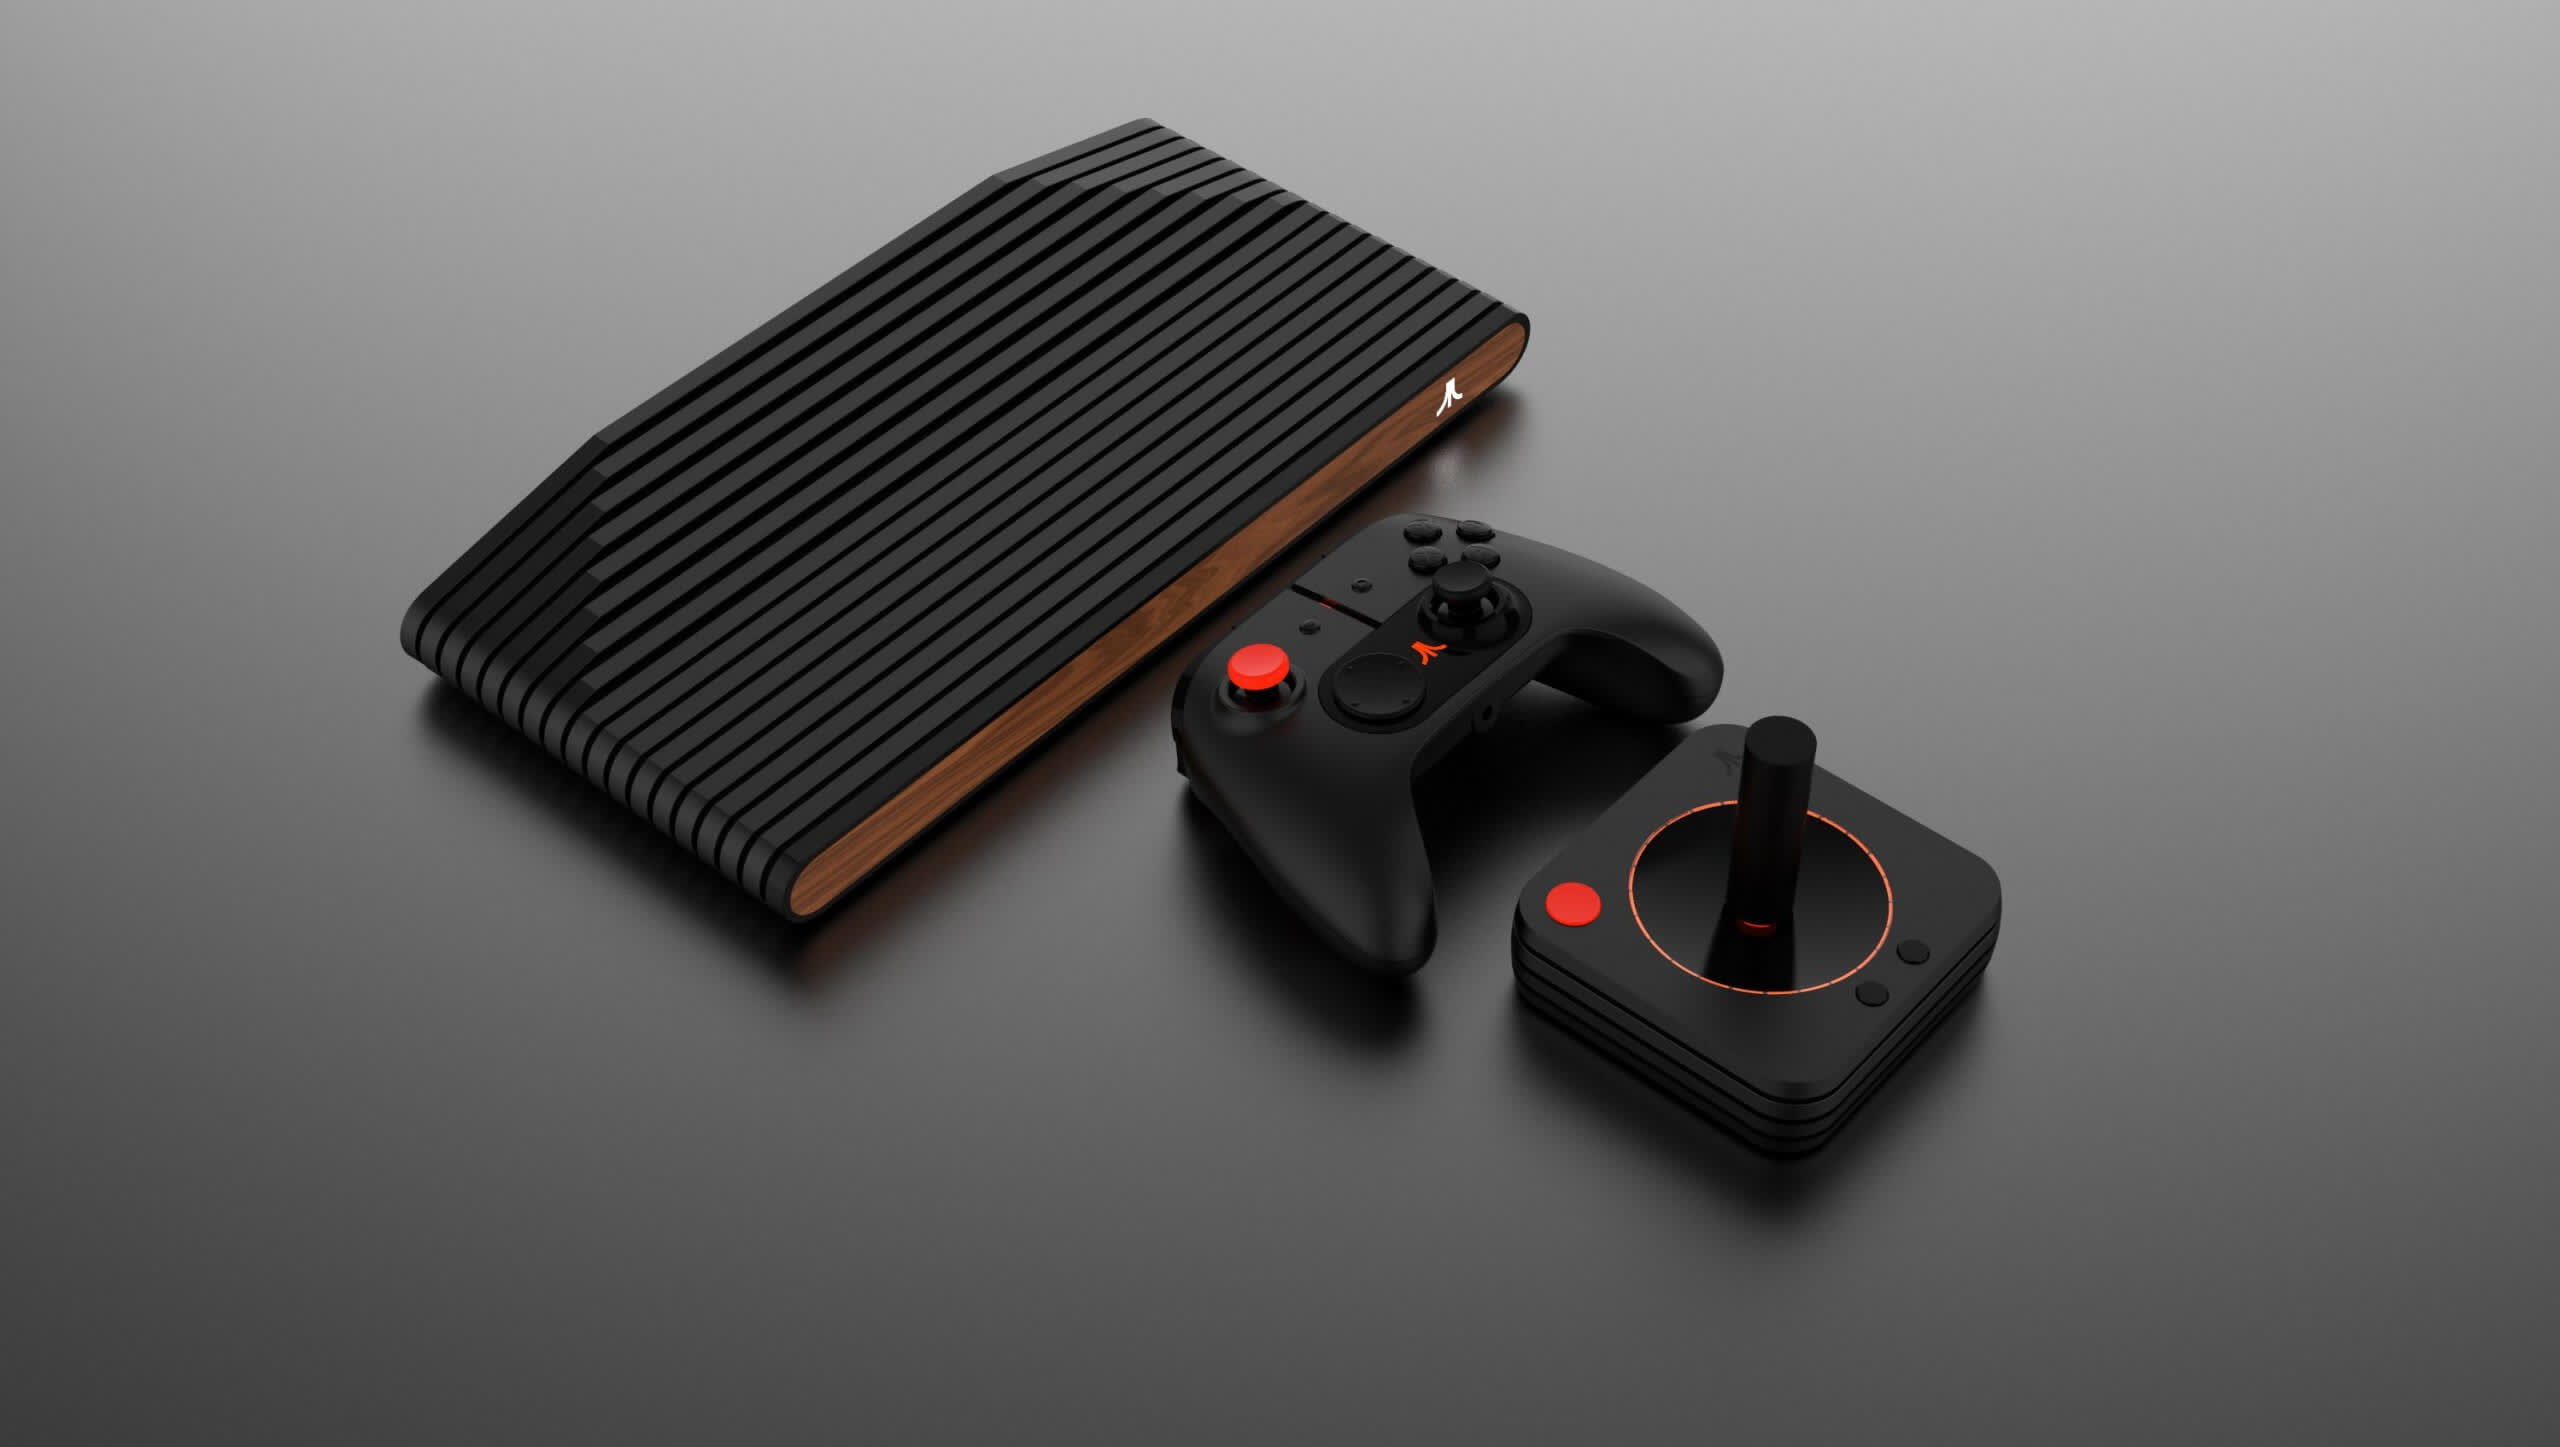 Atari will finally launch the VCS at retail this month